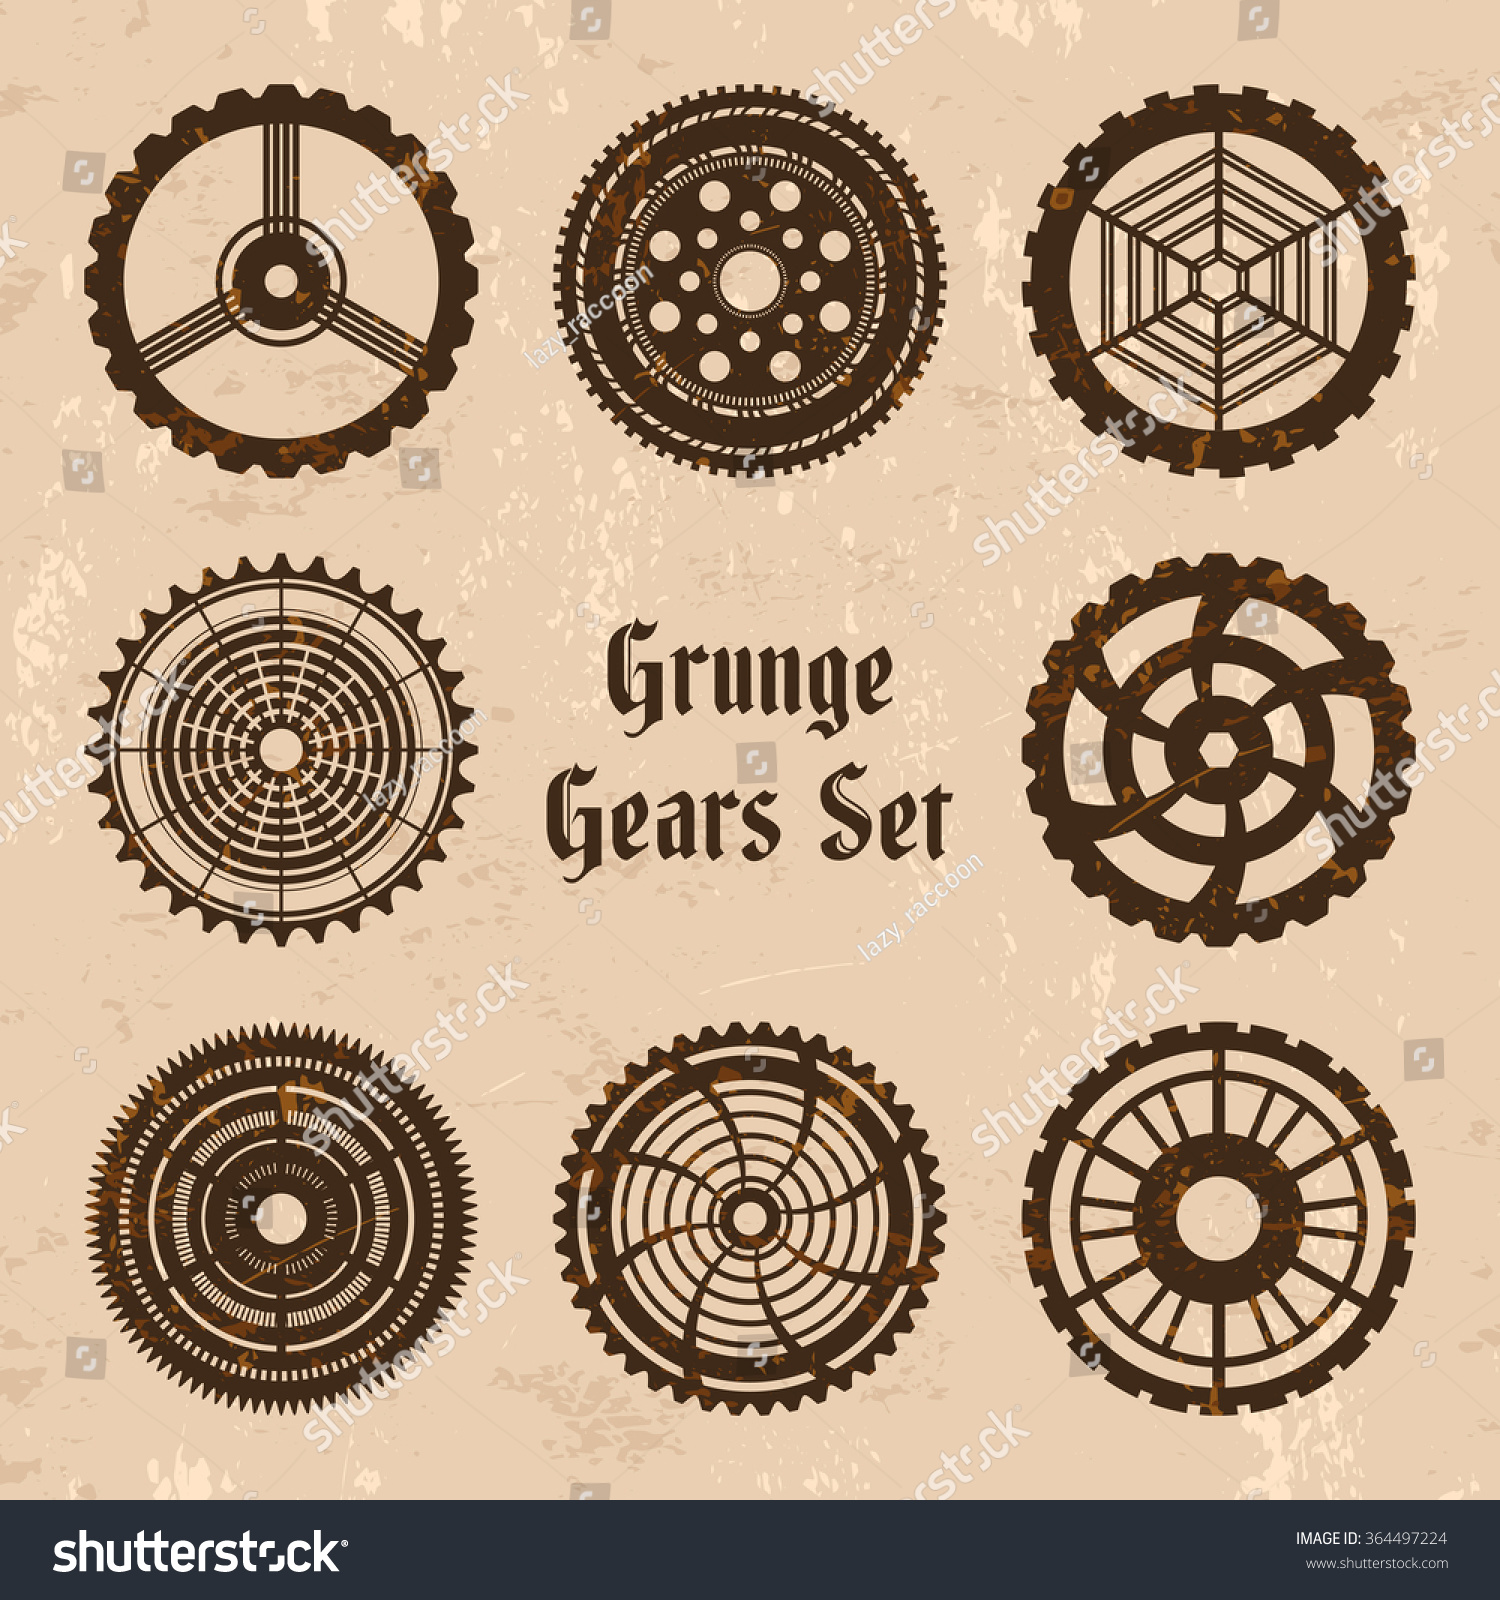 Vector grunge rusty gears set in steam punk style 8 steam punk cogwheels on grungy backdrop with text Grunge Gears Set Fully editable file for your projects